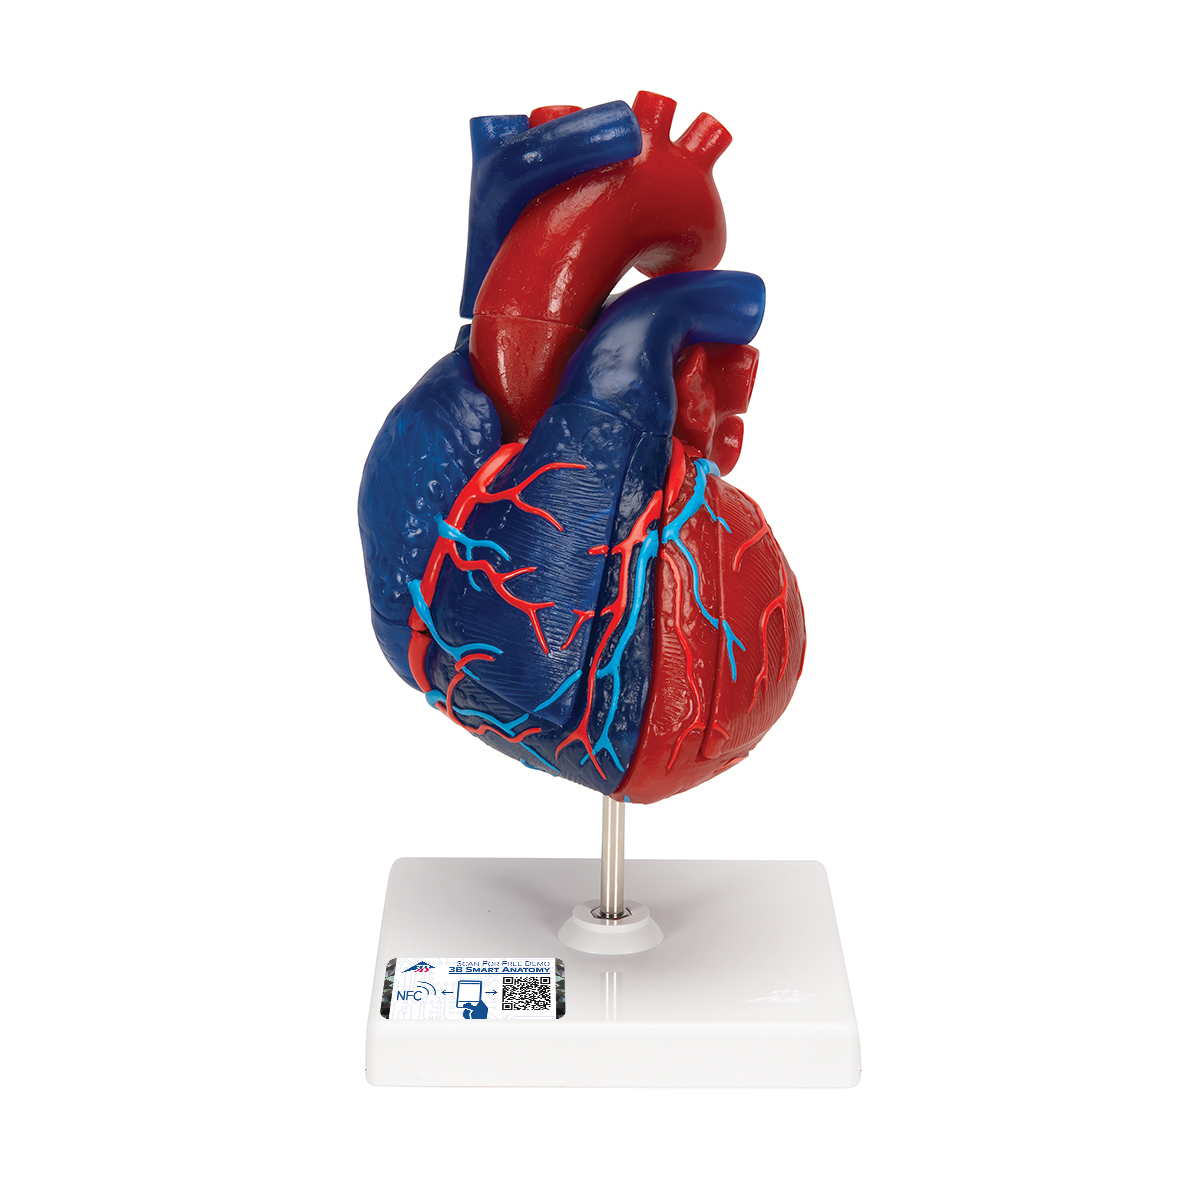 Magnetic Heart Model Life Size 5 Parts 1010007 3b Scientific